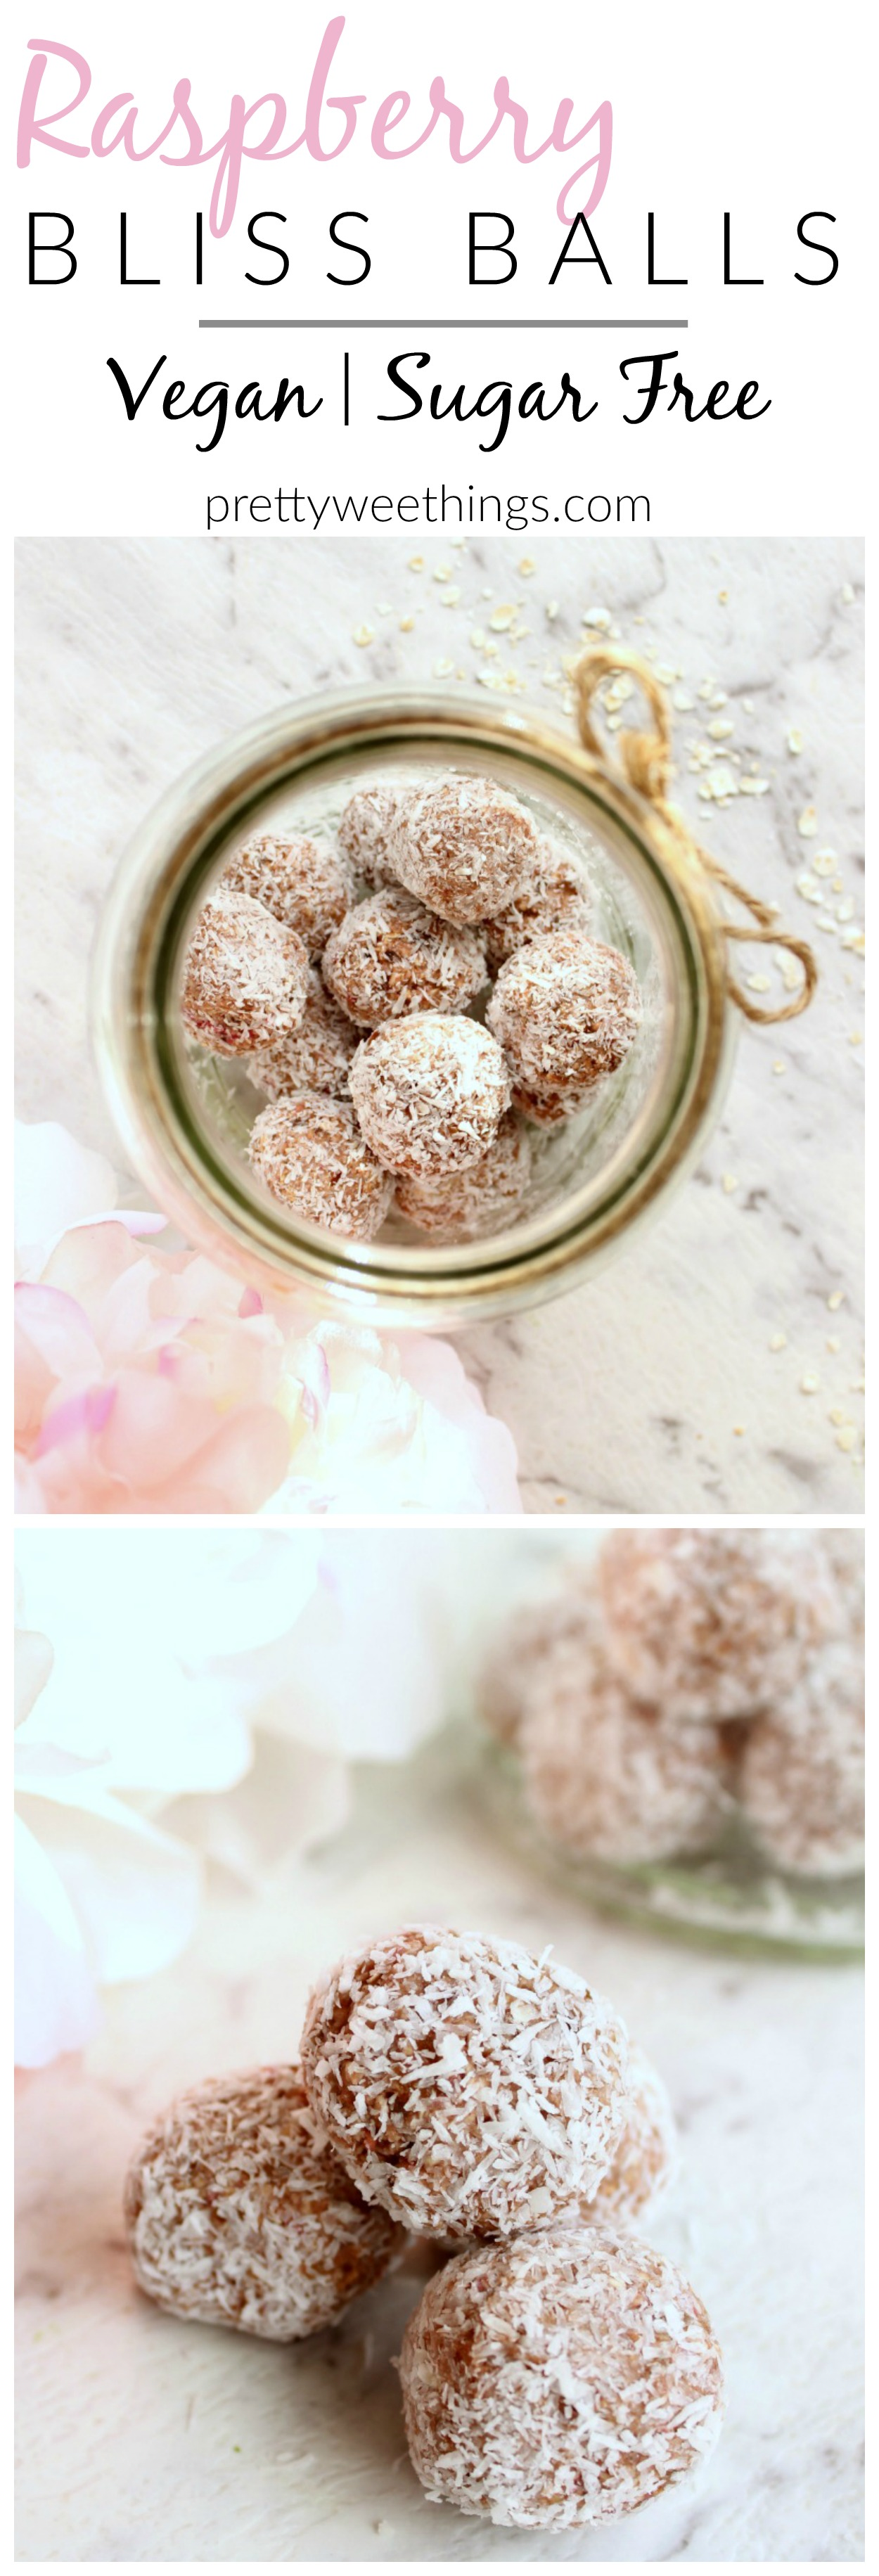 Naturally sweetened and totally nutritious, these raspberry bliss balls make the perfect snack between meals or lunch box addition.